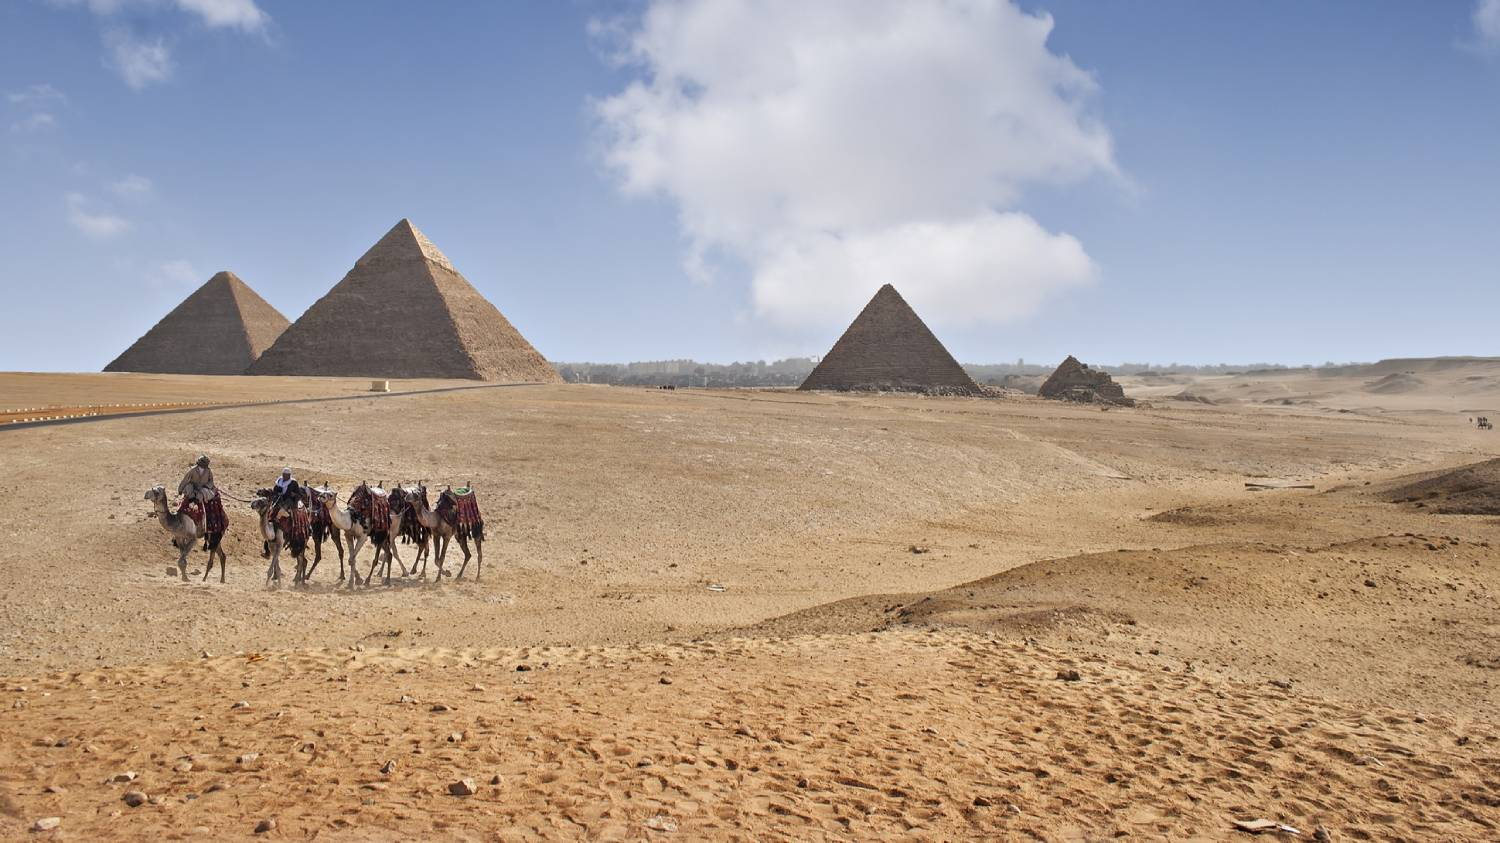 Giza Plateau - Things To Do In Egypt